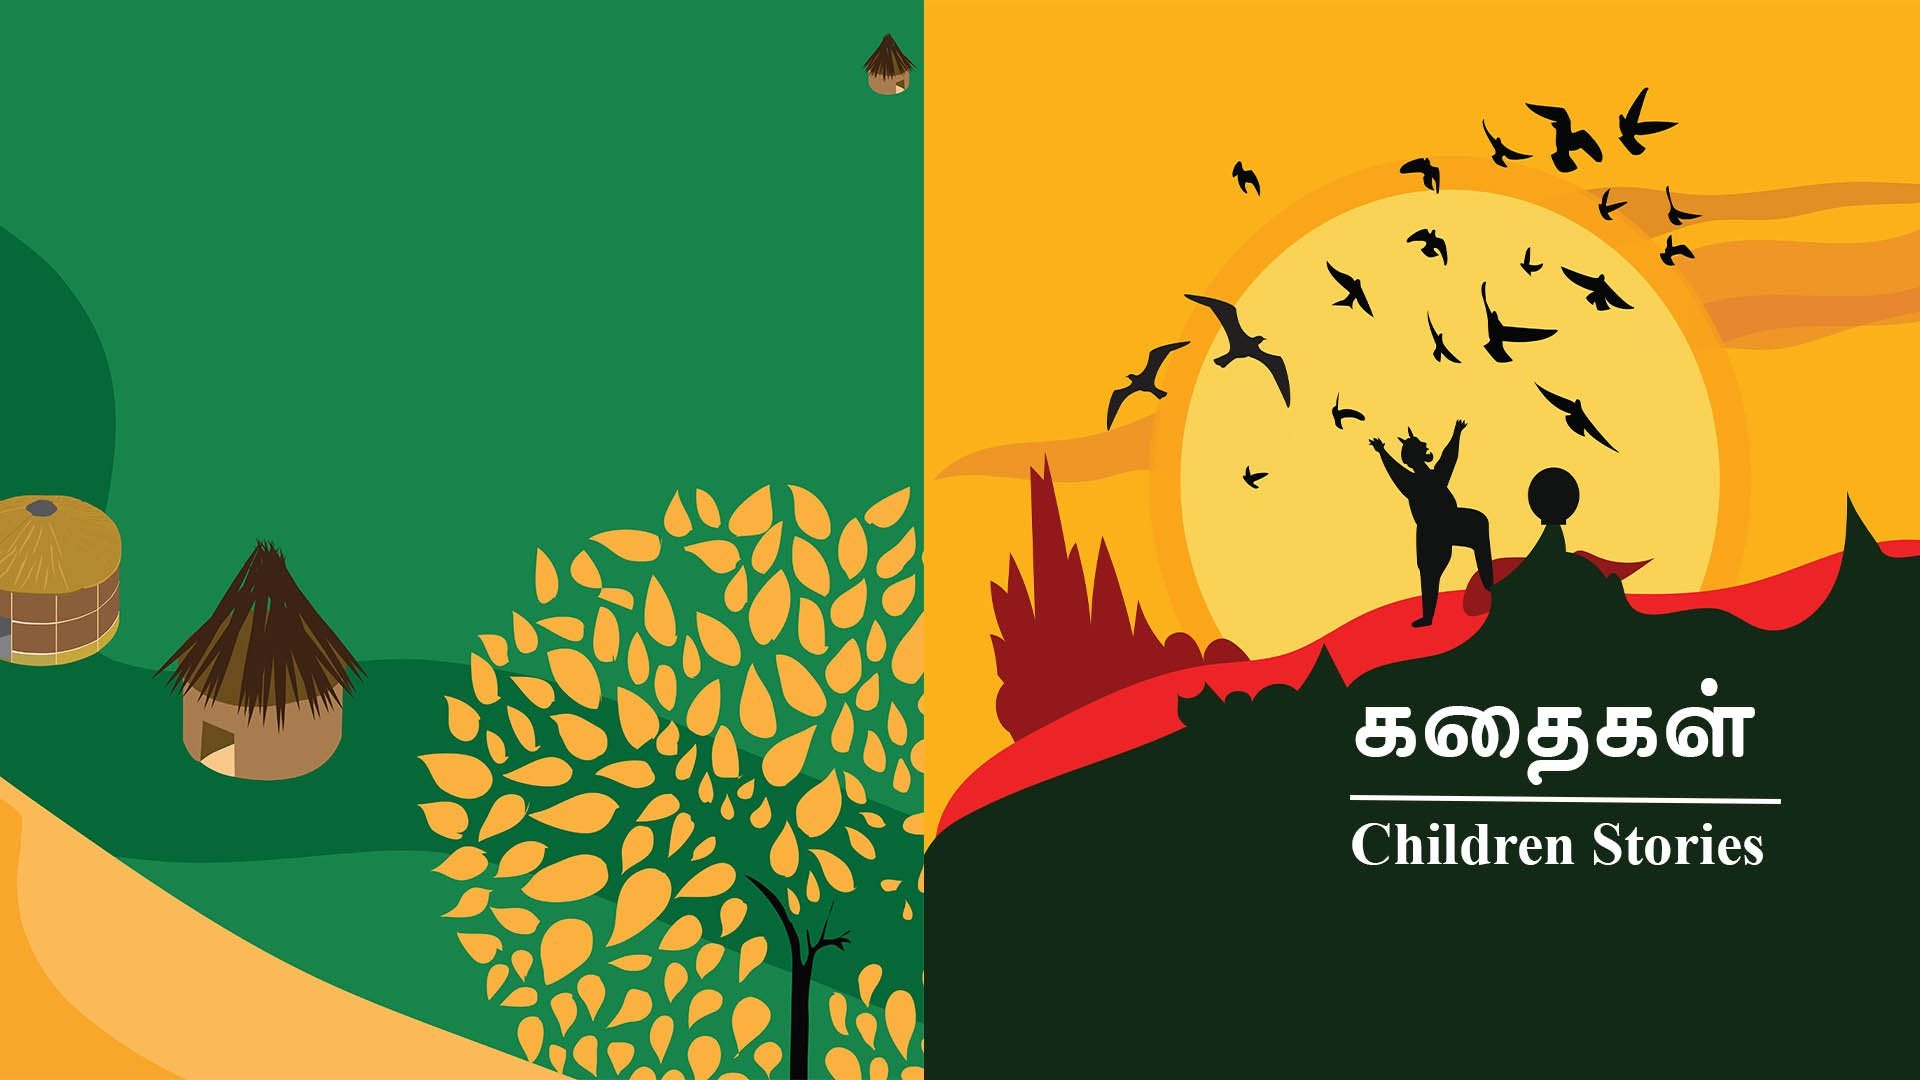 https://ipaatti.us/collections/mellinam_tamil_children_stories